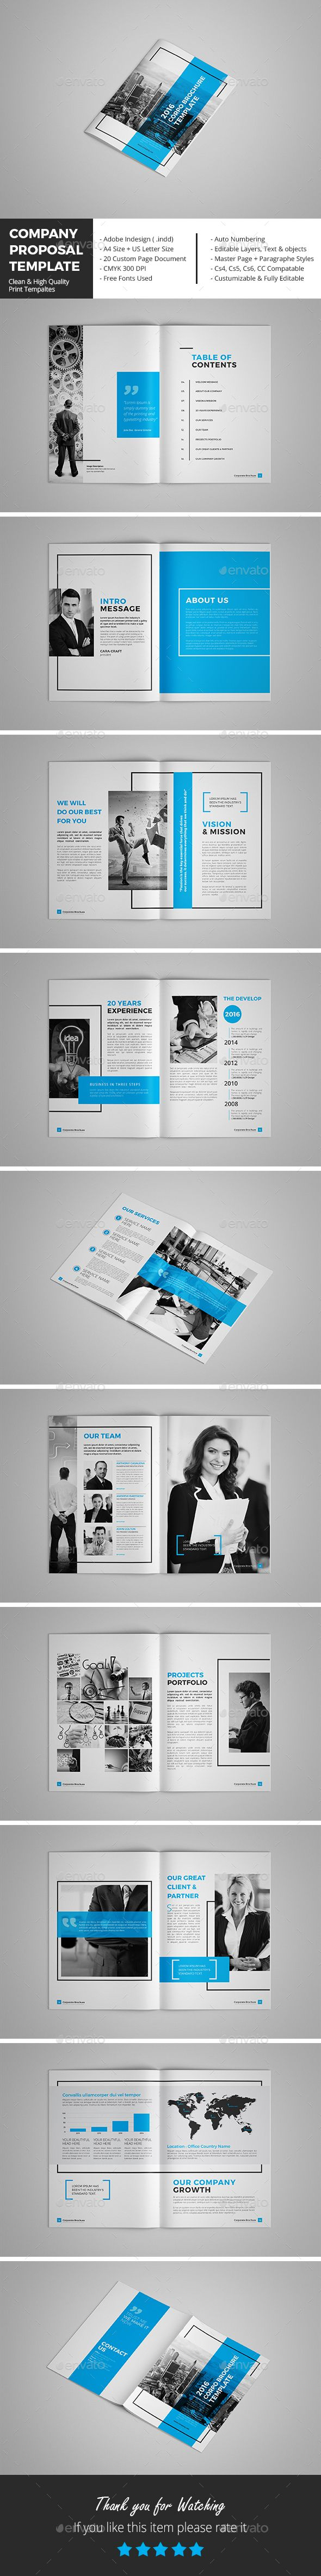 Company Proposal Template - Corporate Brochures